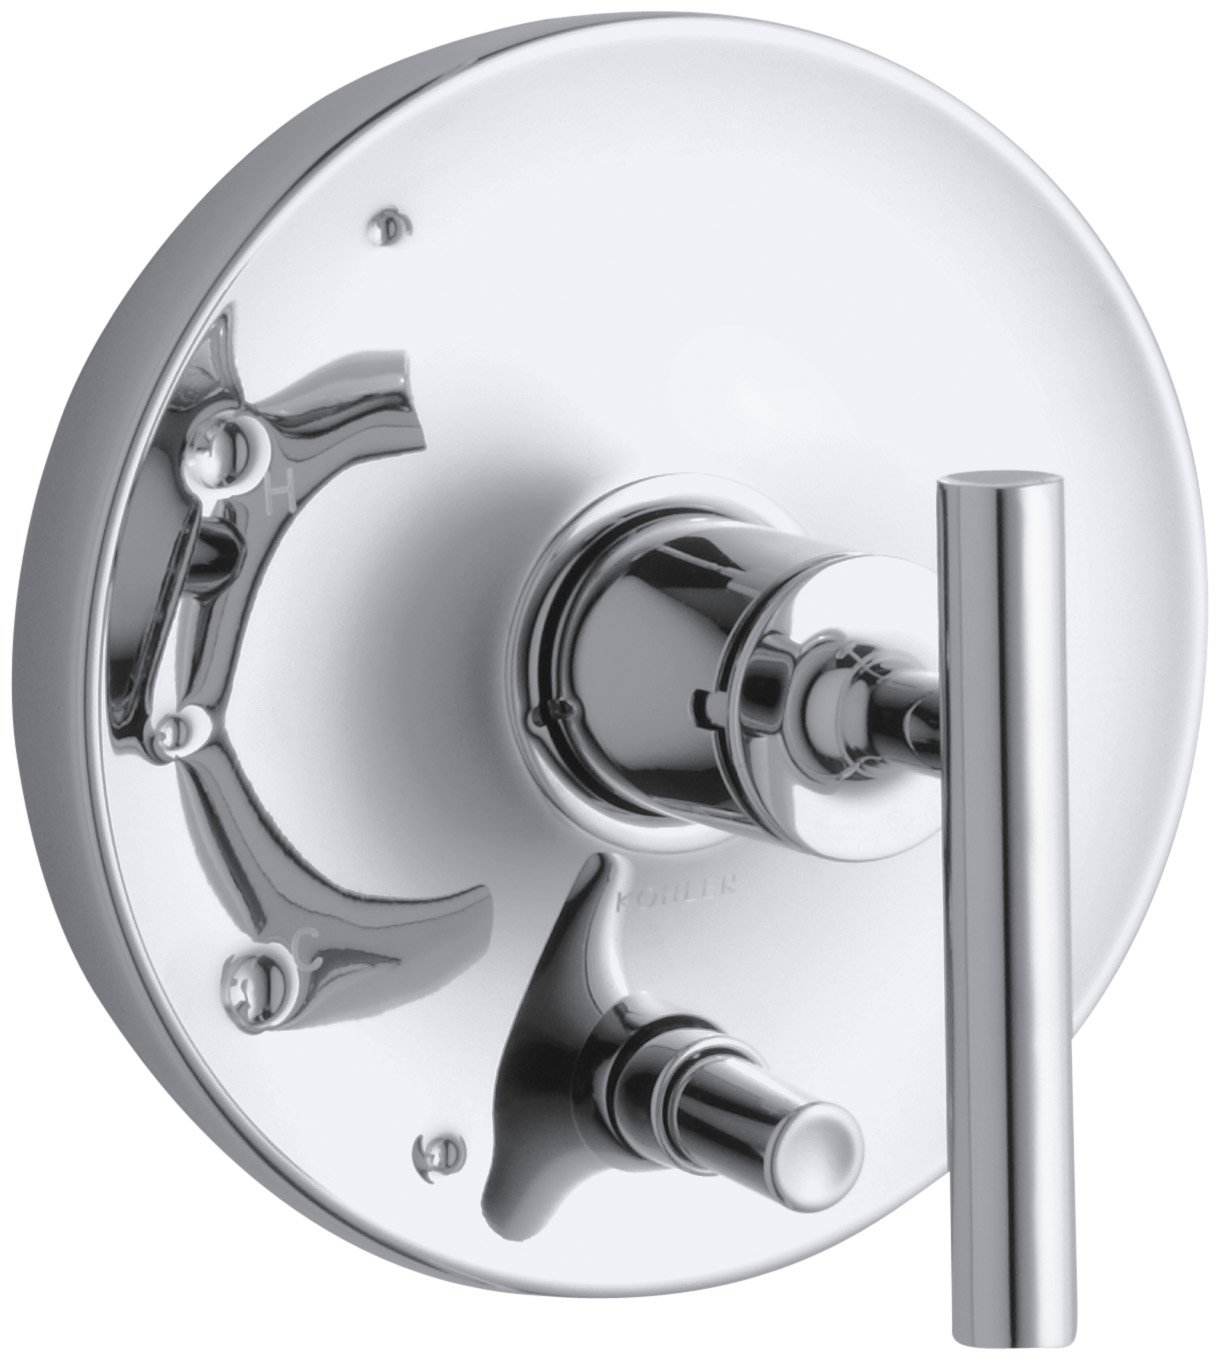 KOHLER K-T14501-4-CP Purist Rite-Temp Pressure-Balancing Valve Trim with Lever Handles, Polished Chrome 70%OFF